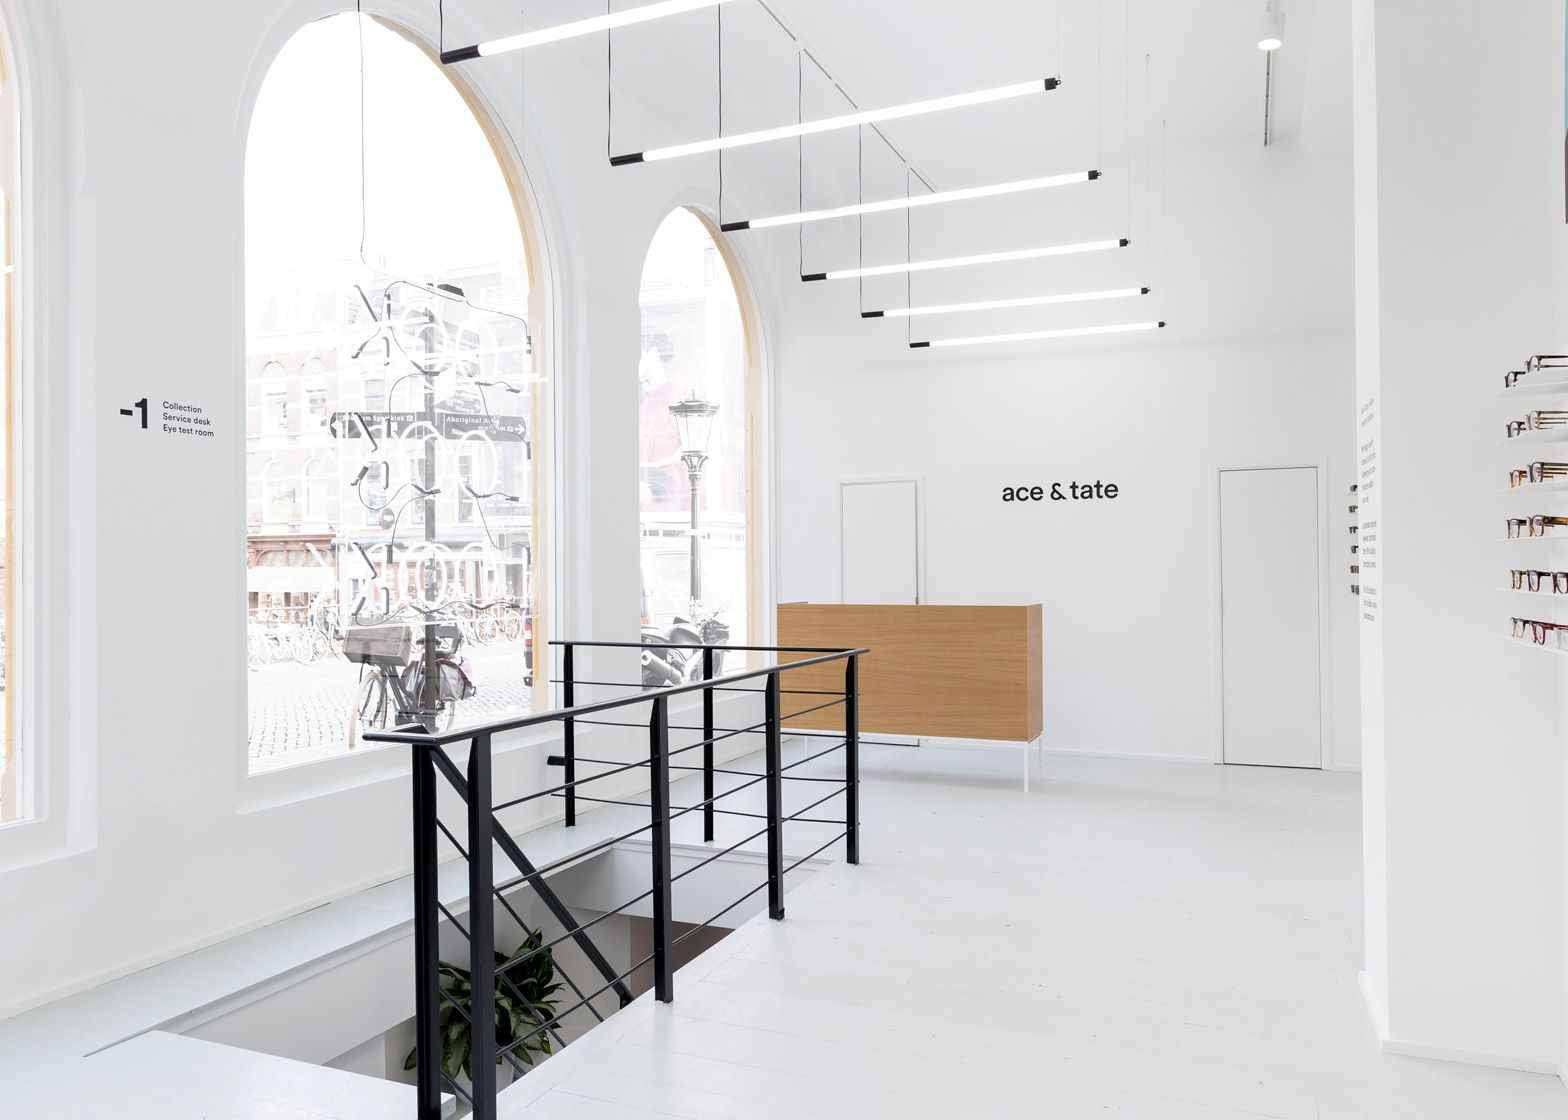 Occult Studio Based The Interior Of This Eyewear Store For Ace Tate On Contemporary Exhibition